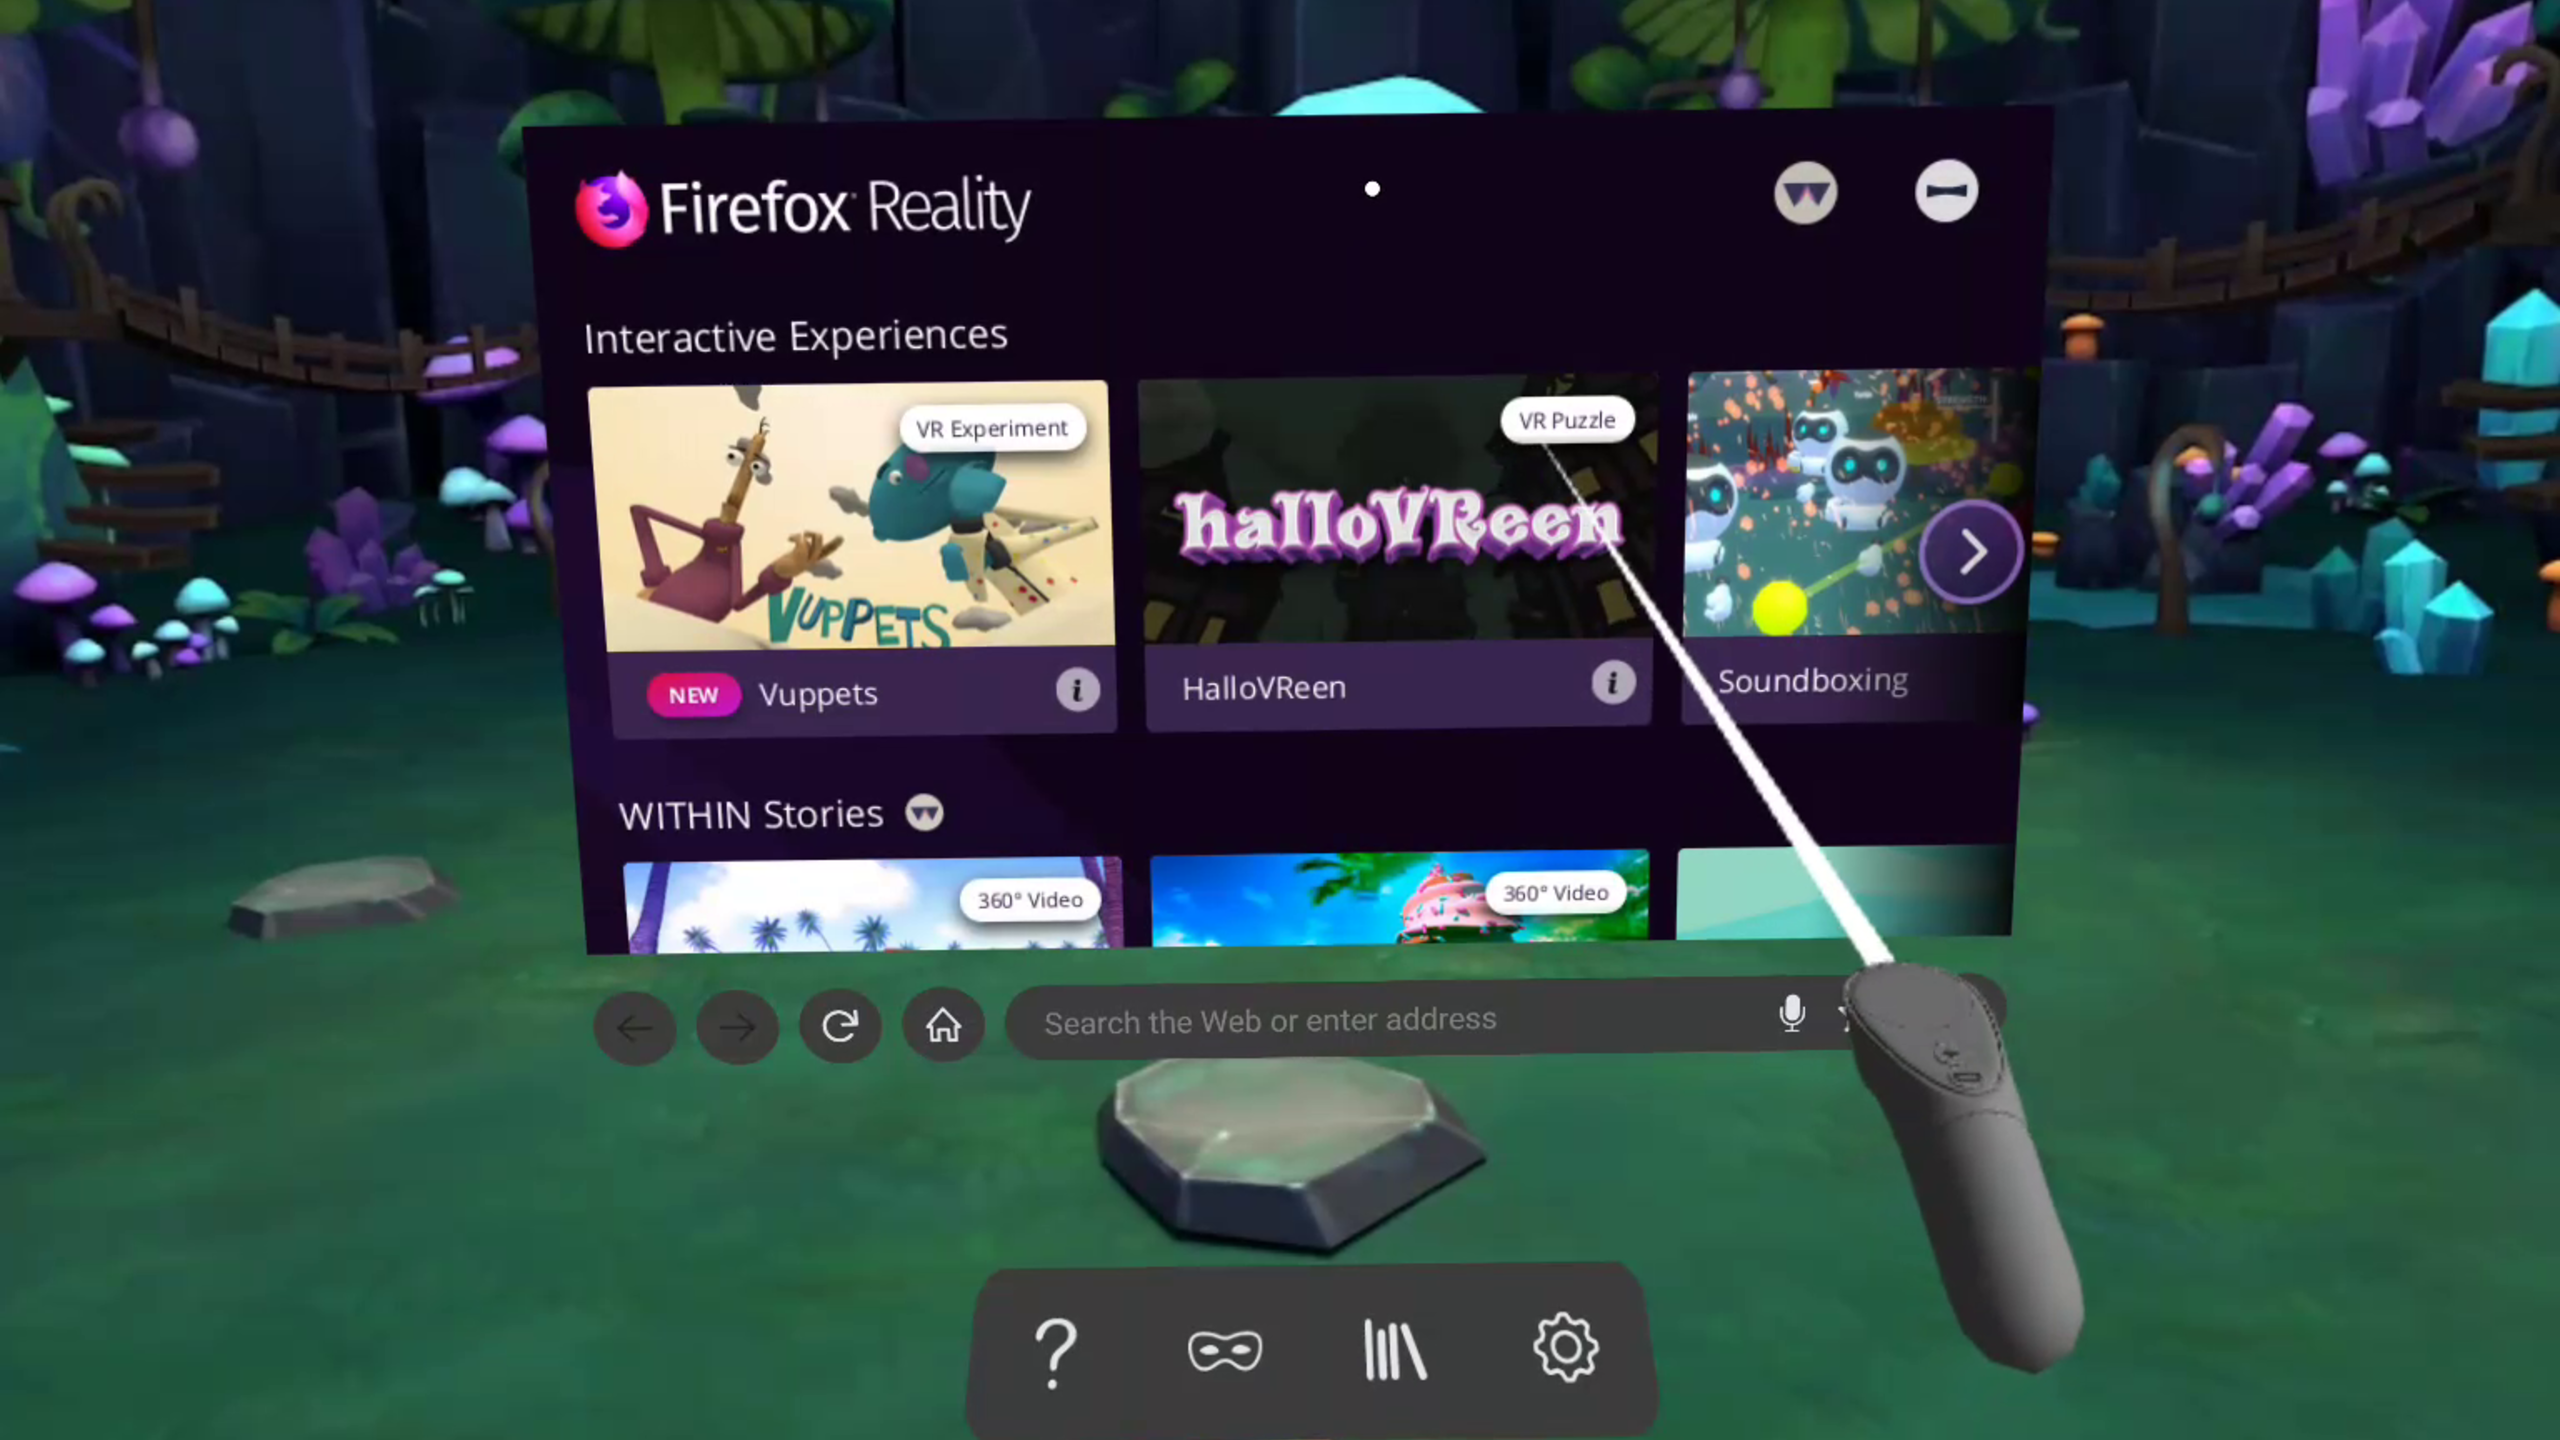 Firefox Reality web browser using Oculus Go headset